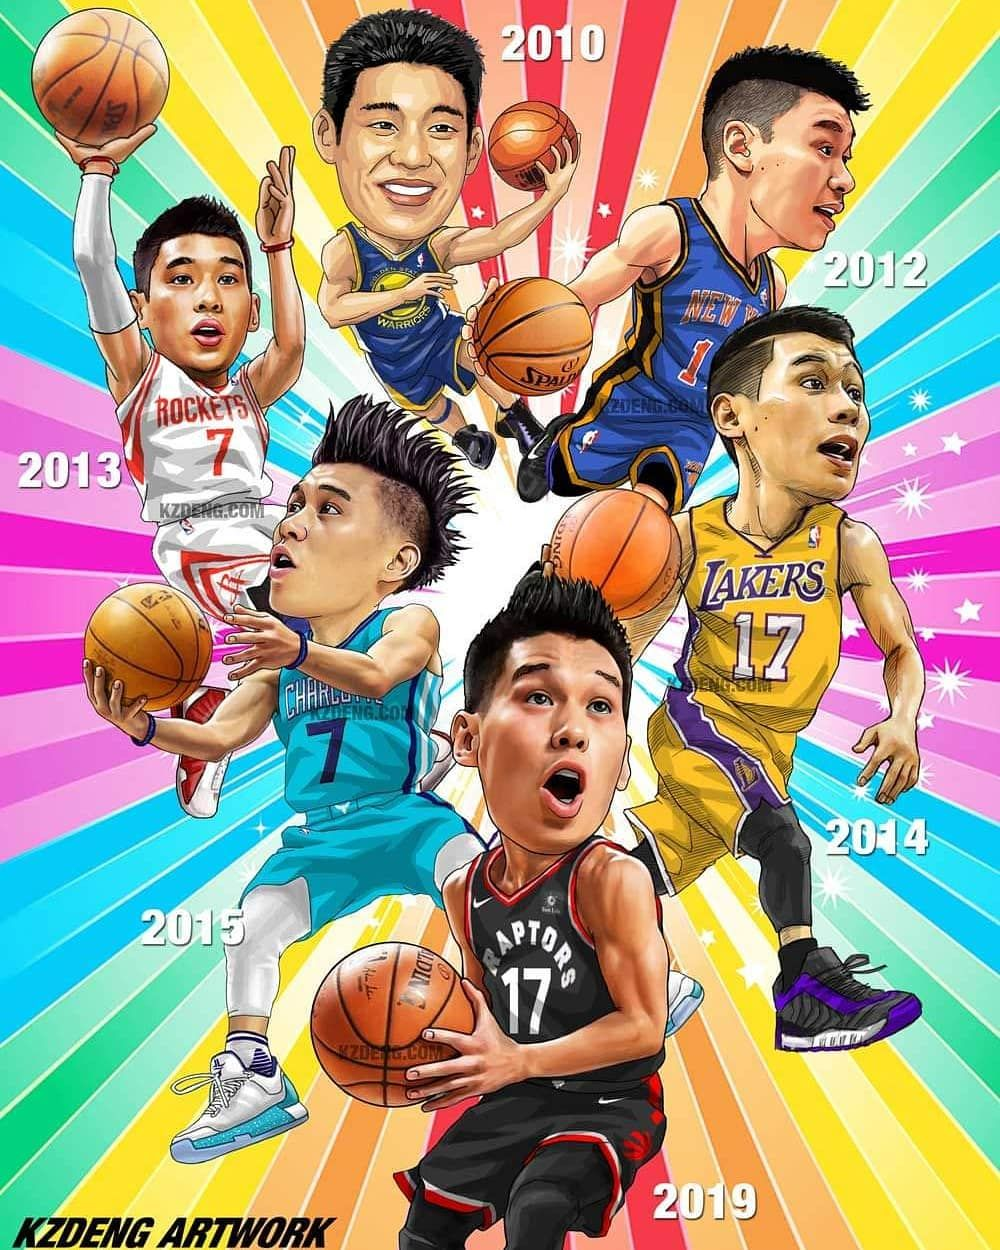 nbaart jeremylin jlin7 jlin7 Artworks between 2010